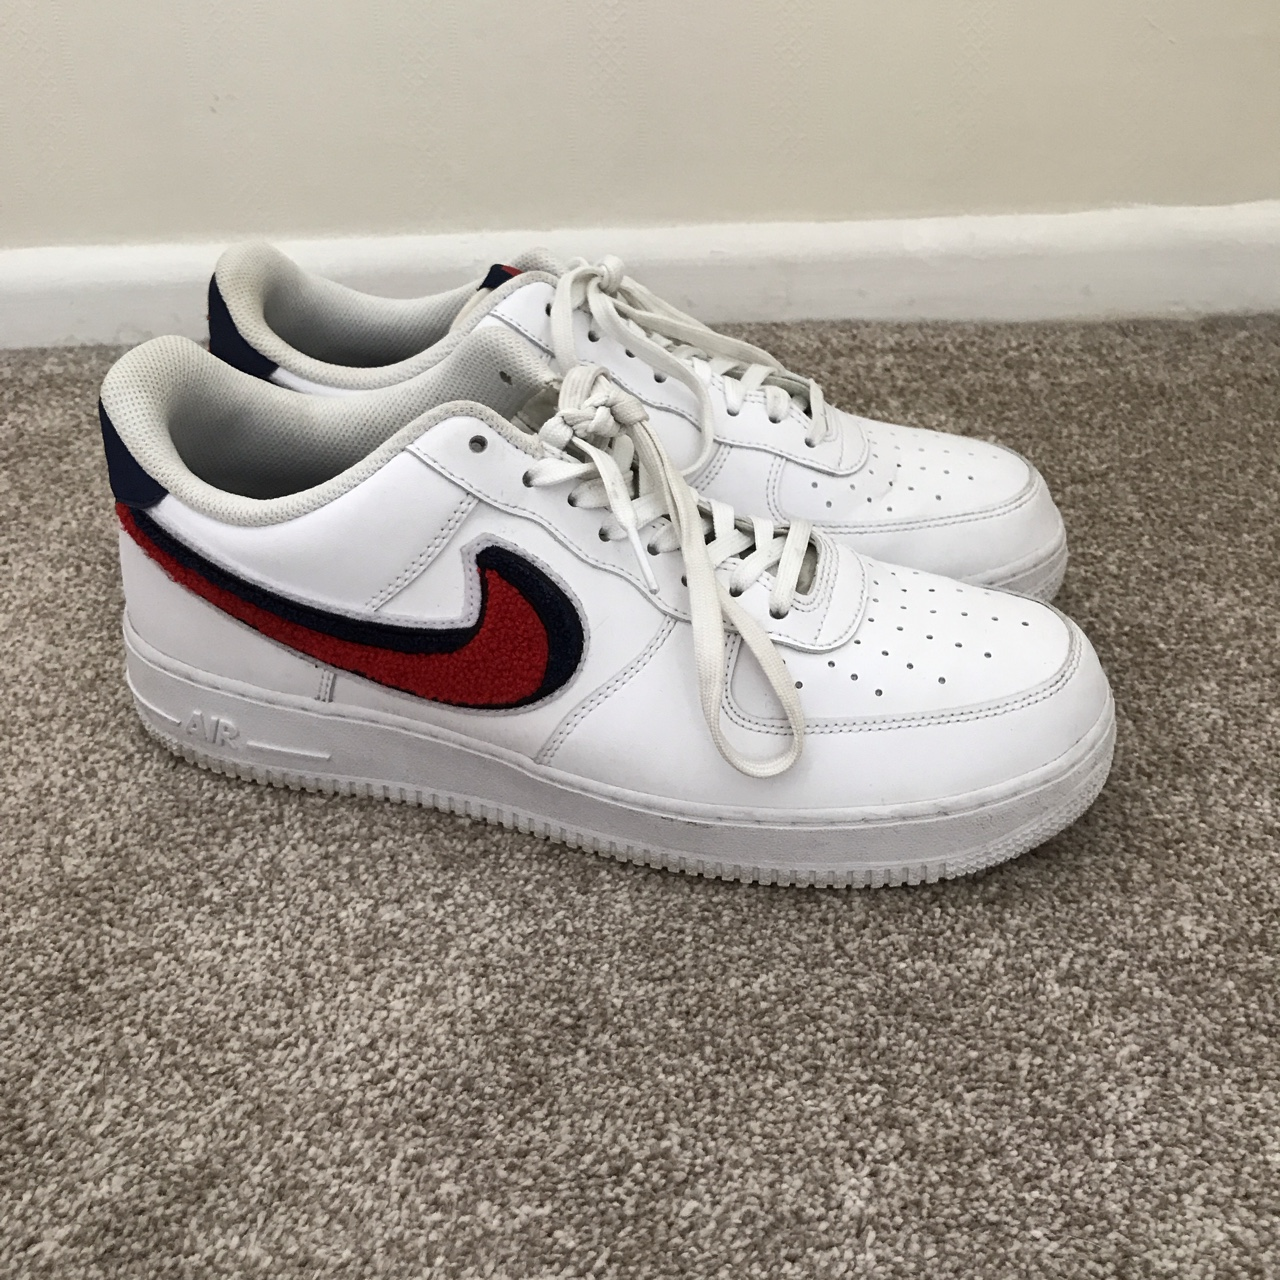 Nike Air Force 1 Lv 08 in a size UK10 Really sick    - Depop